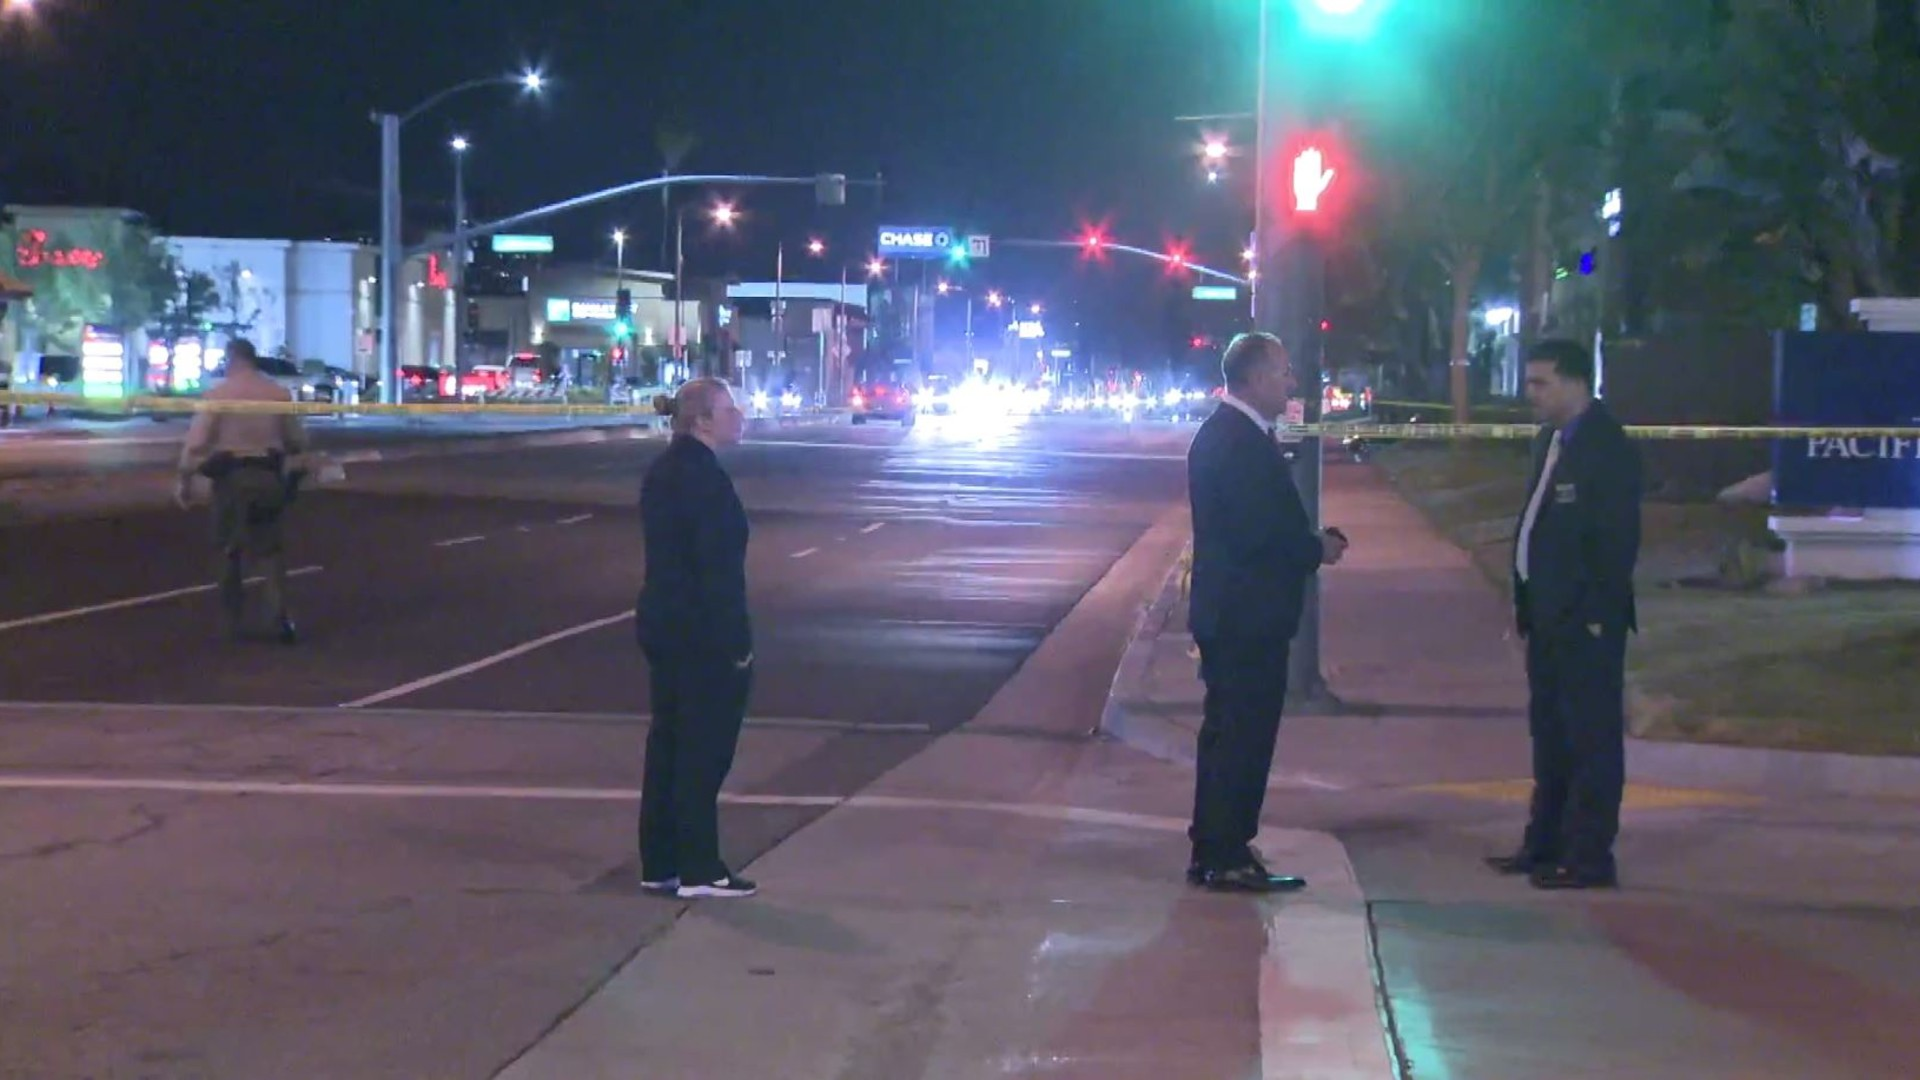 Detectives investigate the fatal shooting of a man at Whittier Boulevard and Acacia Avenue in Pico Rivera on May 2, 2020. (KTLA)